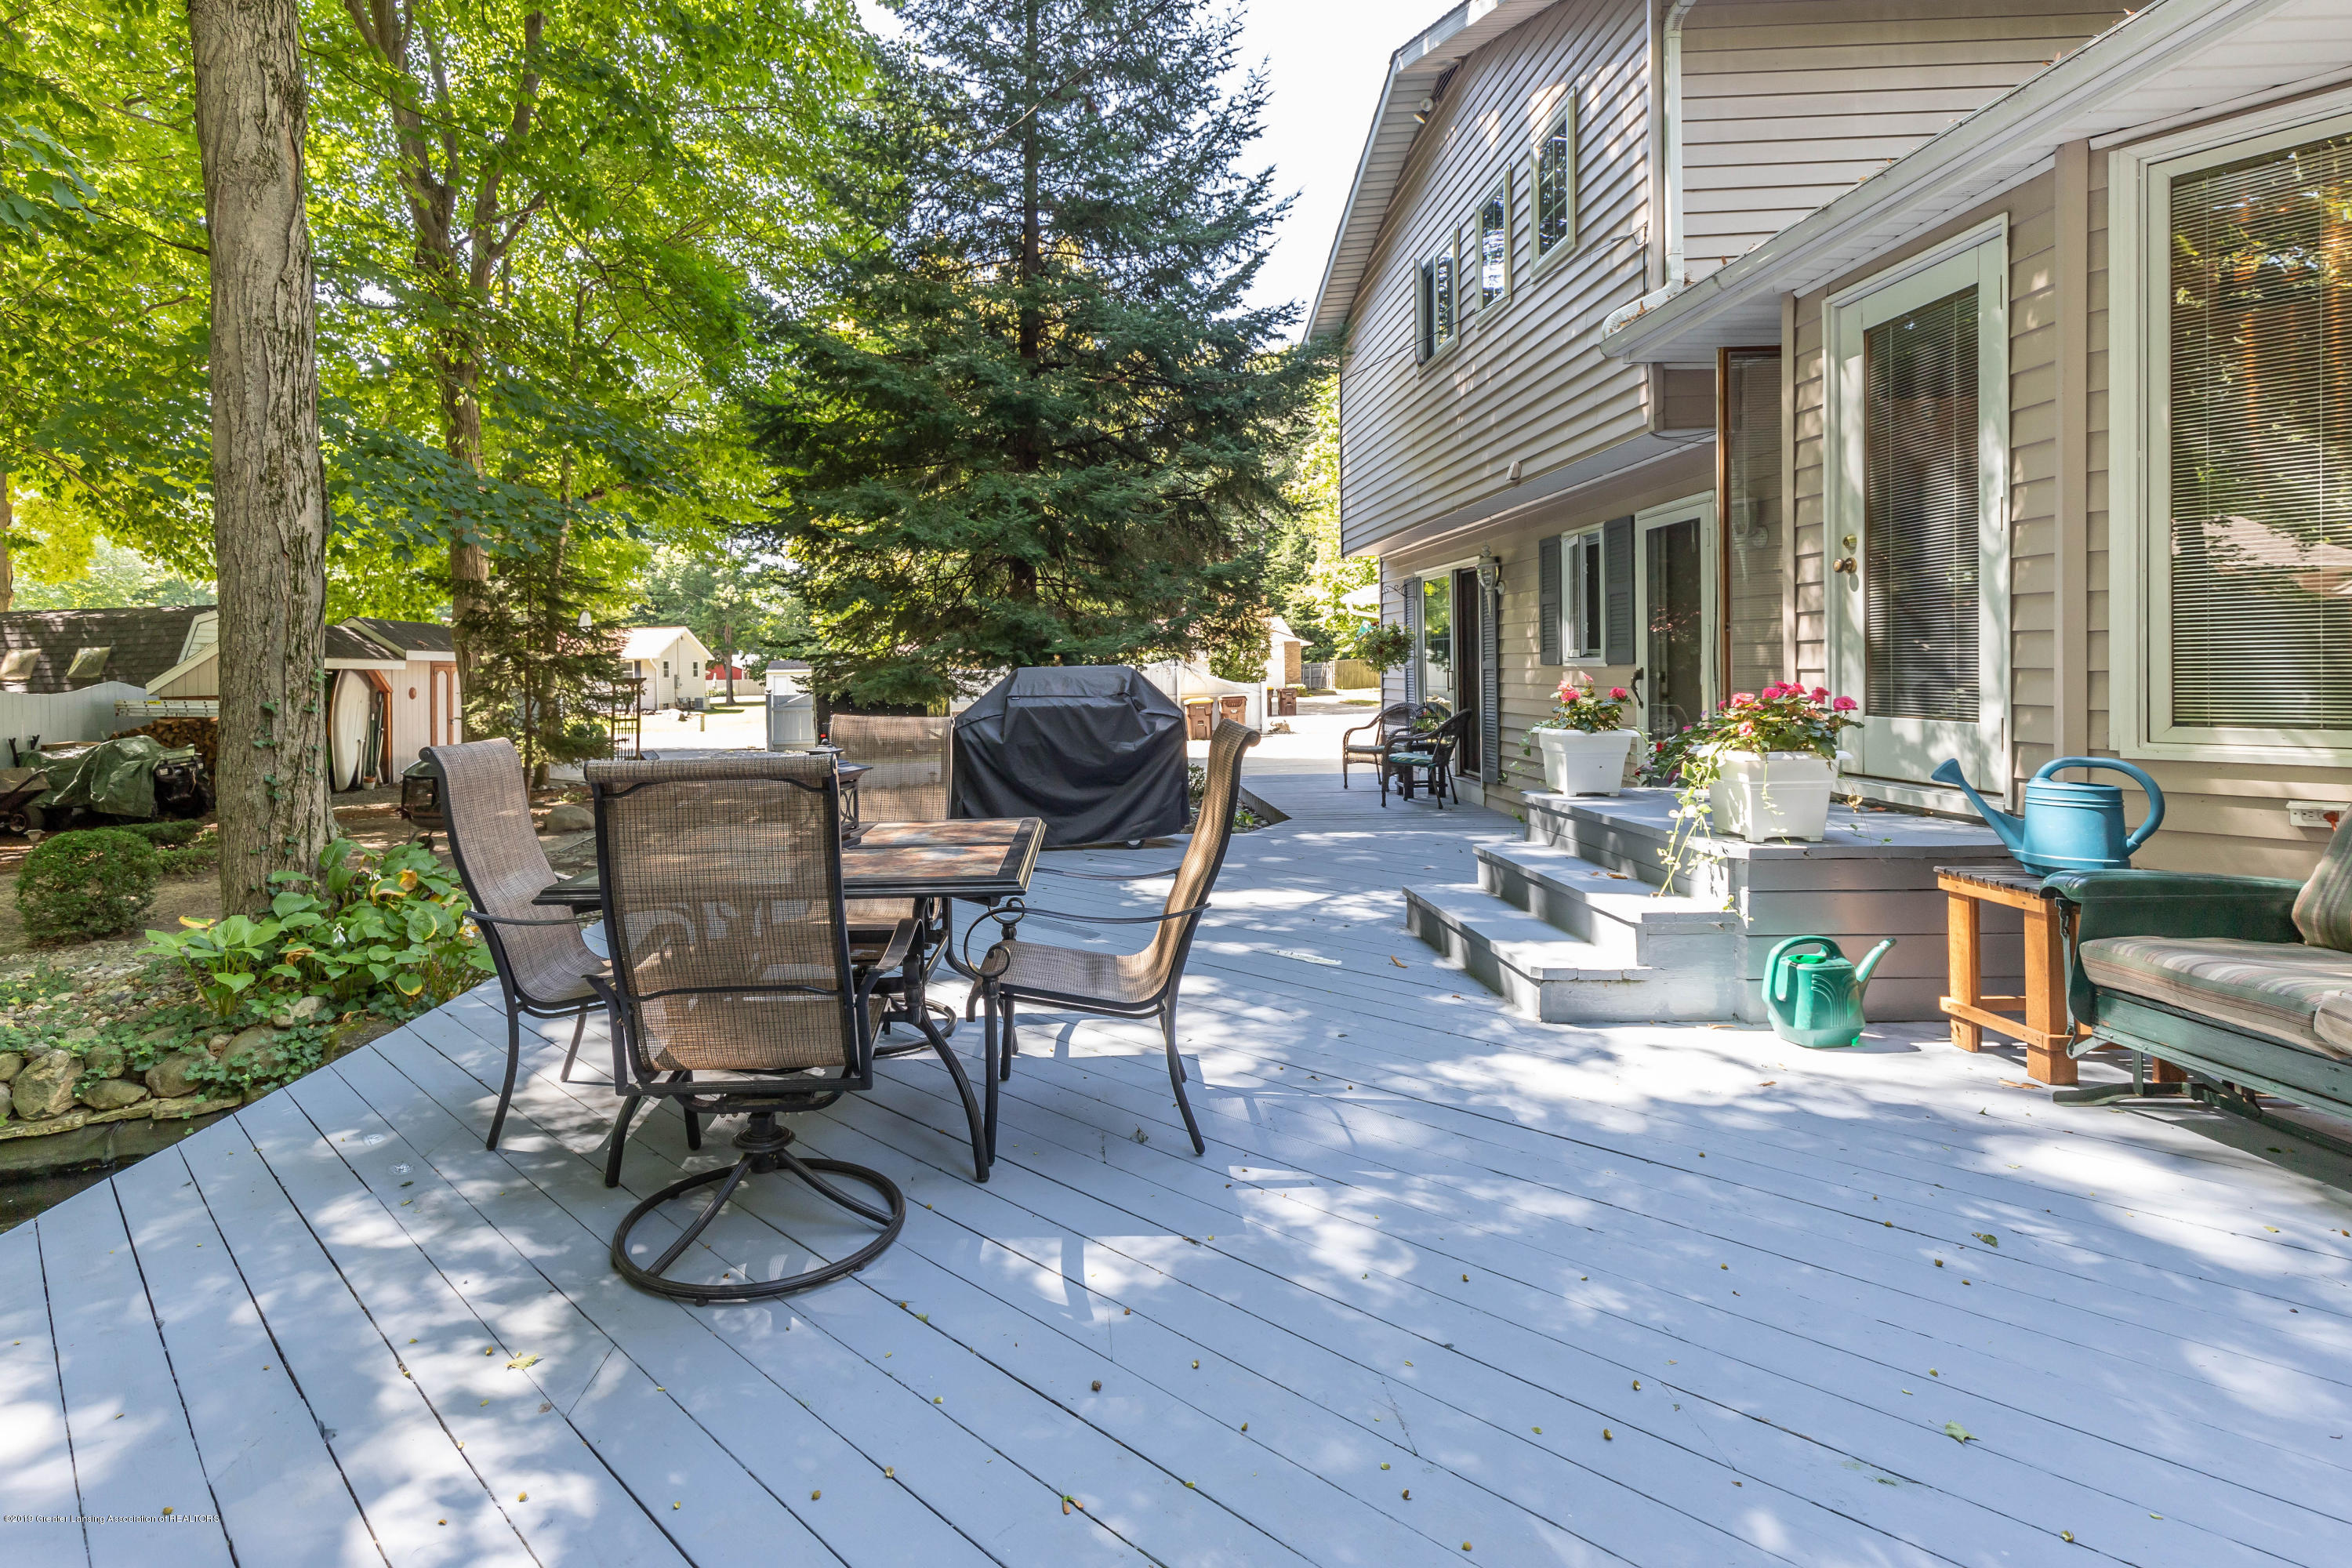 4913 Sugarbush Ln - Backyard - 34